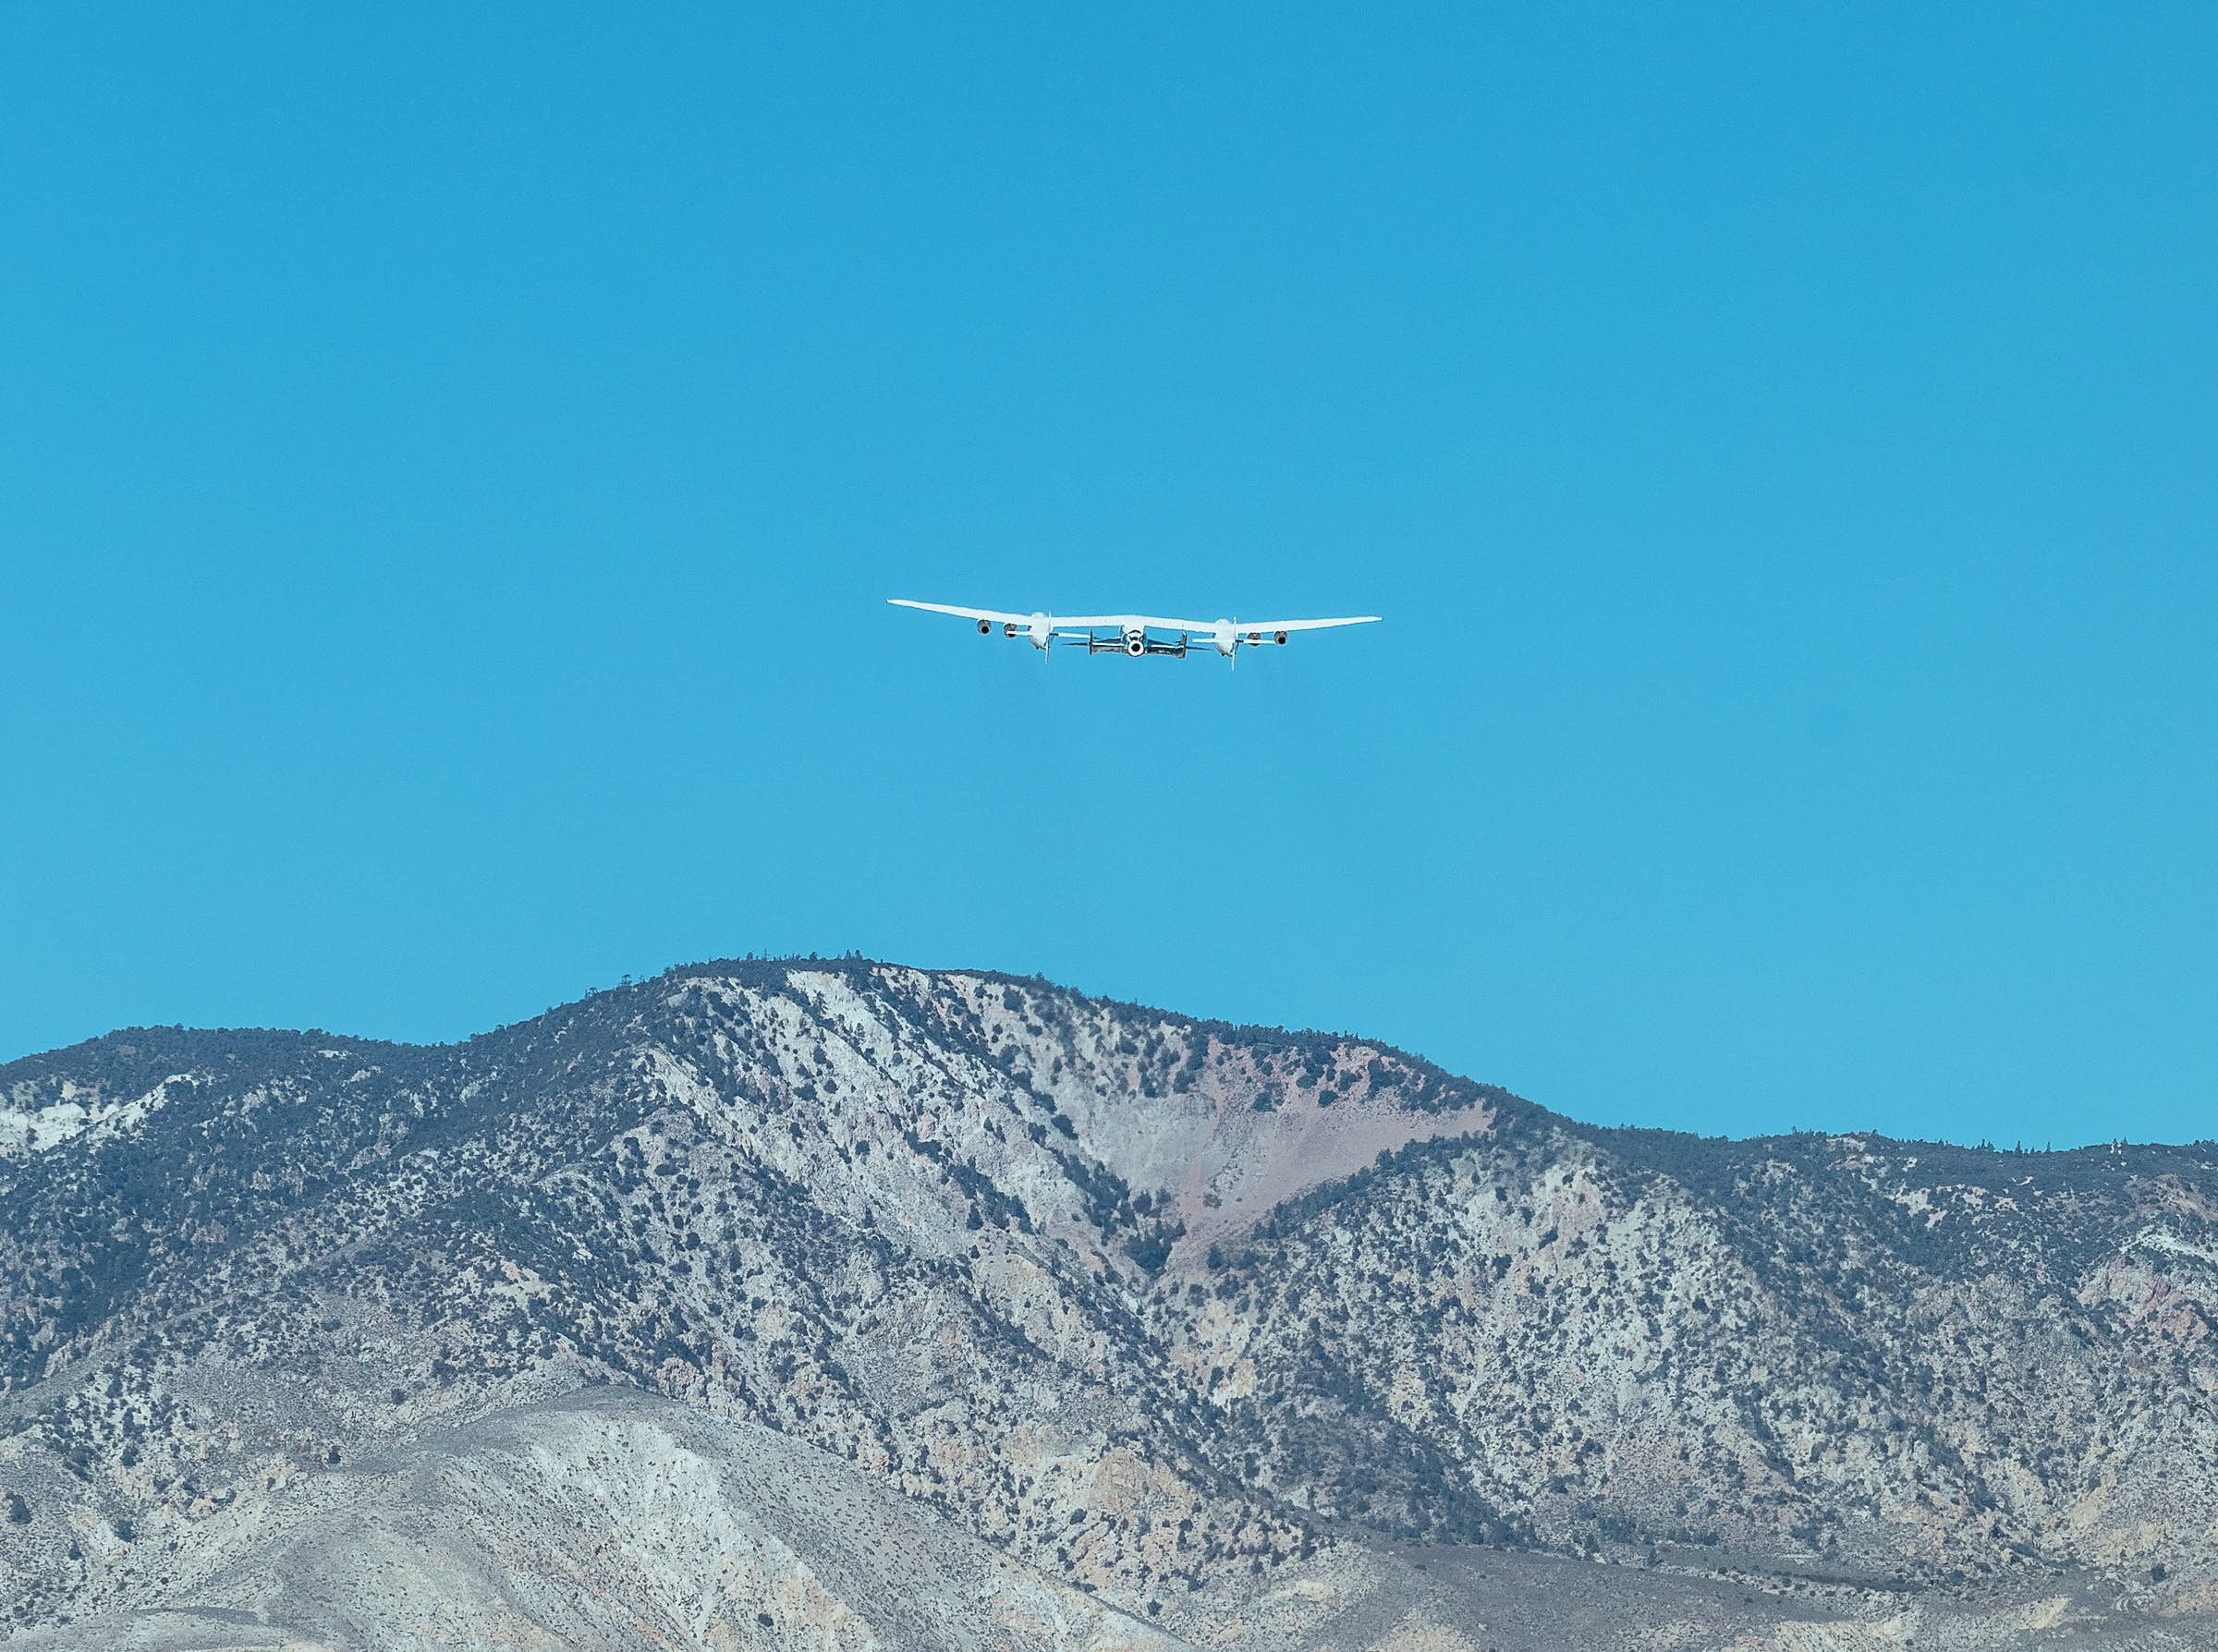 SpaceShipTwo Unity and VMS Eve take off from Mojave, CA and head towards Virgin Galactic's Gateway to Space, Spaceport America, New Mexico.